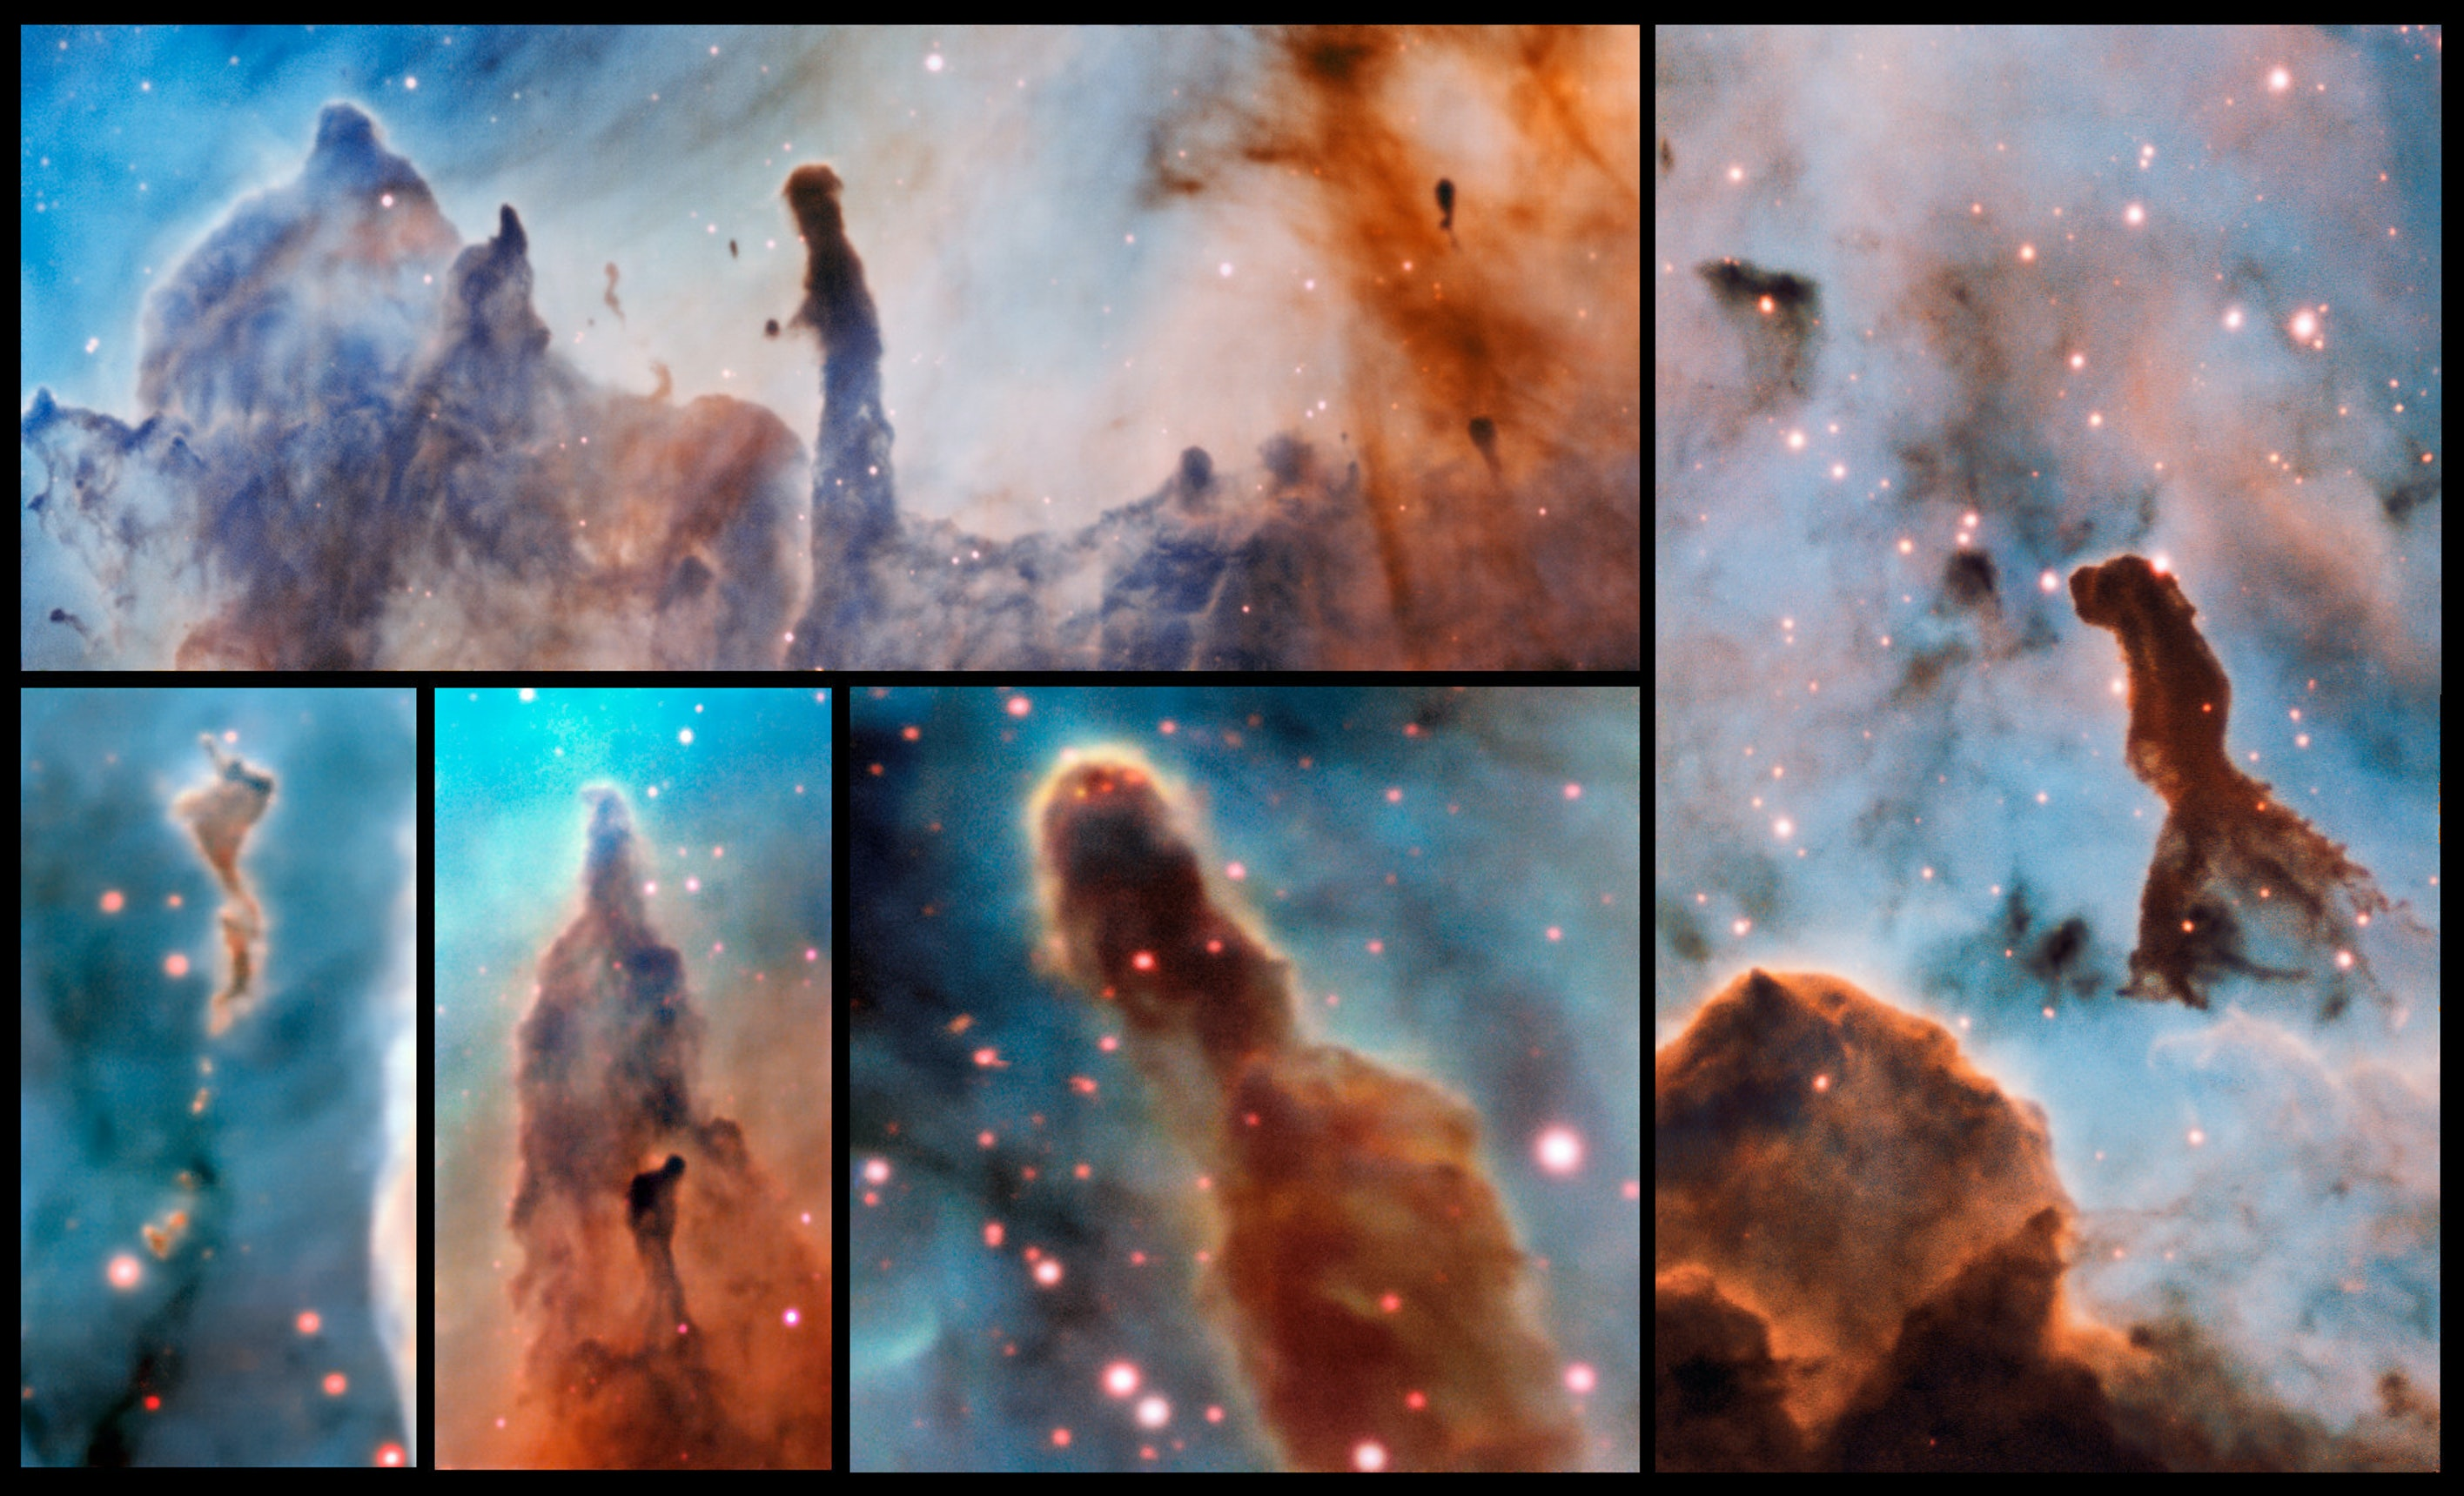 Several pillars within the Carina Nebula.